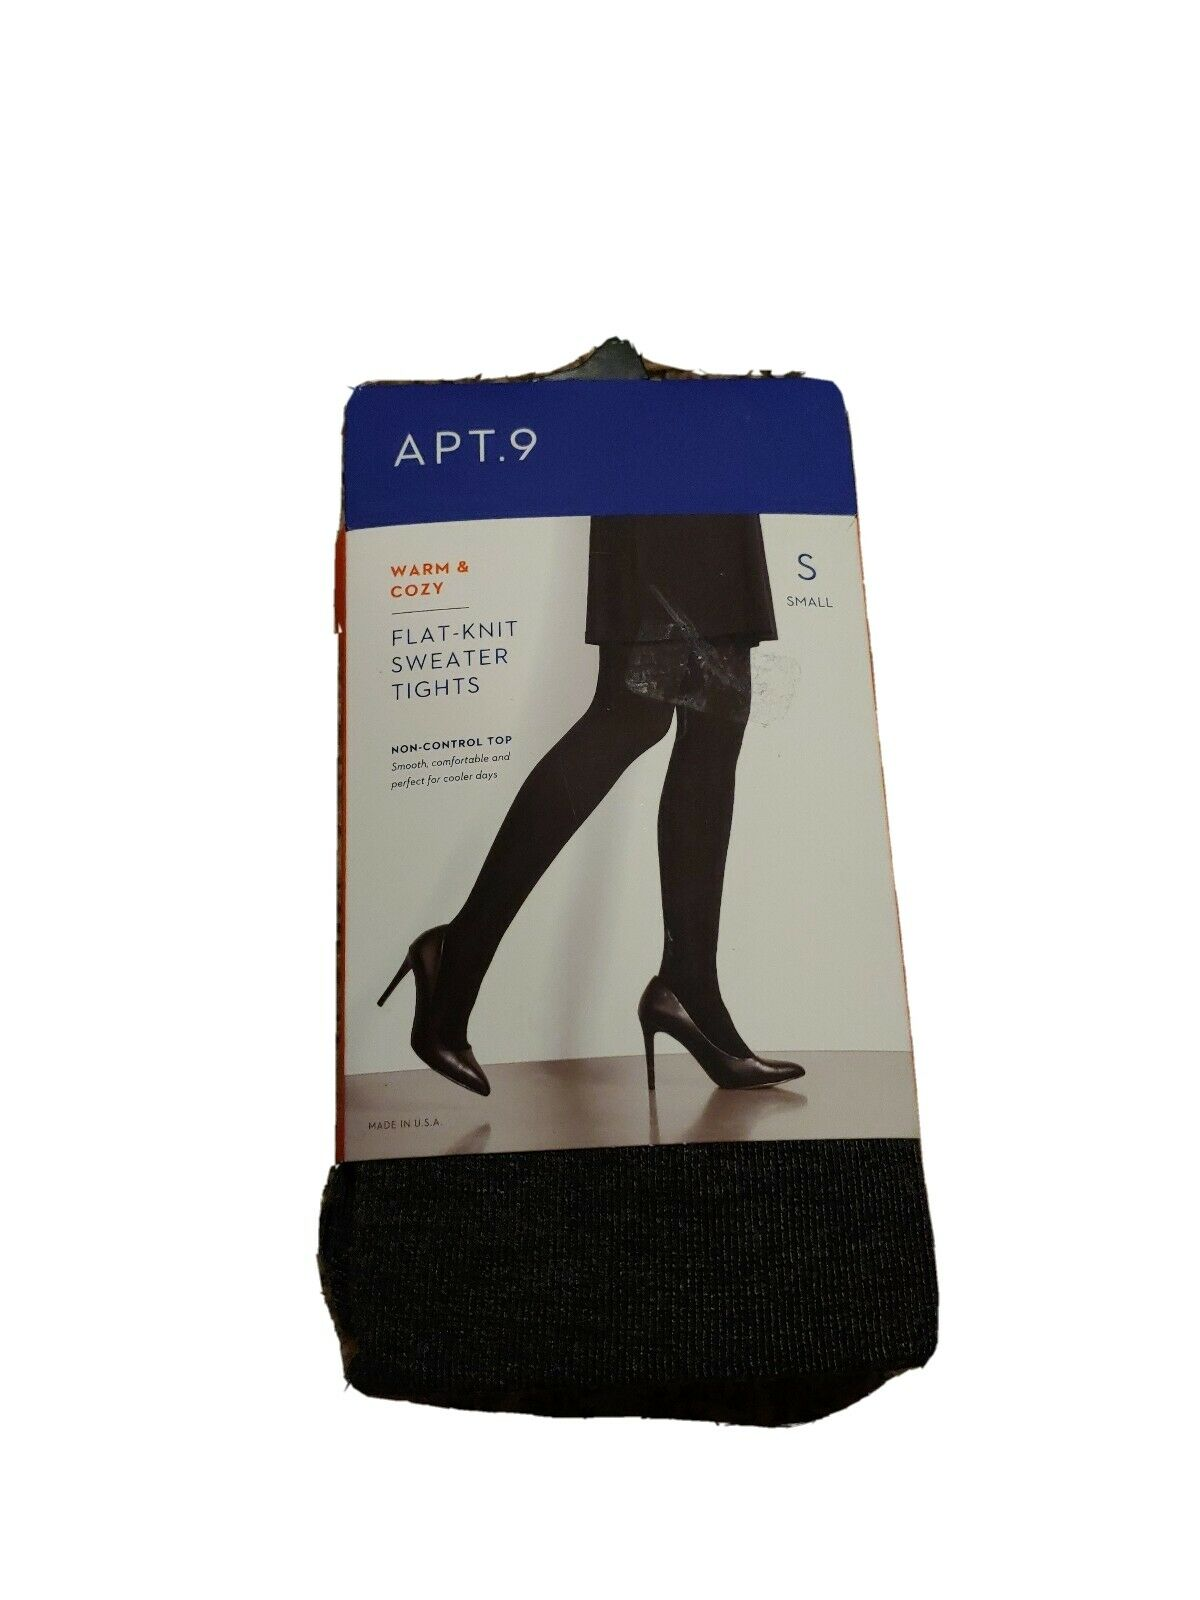 Small Charcoal Heather Chevron Knit Sweater Tights By Apt 9 Kohl S Womens For Sale Online Ebay